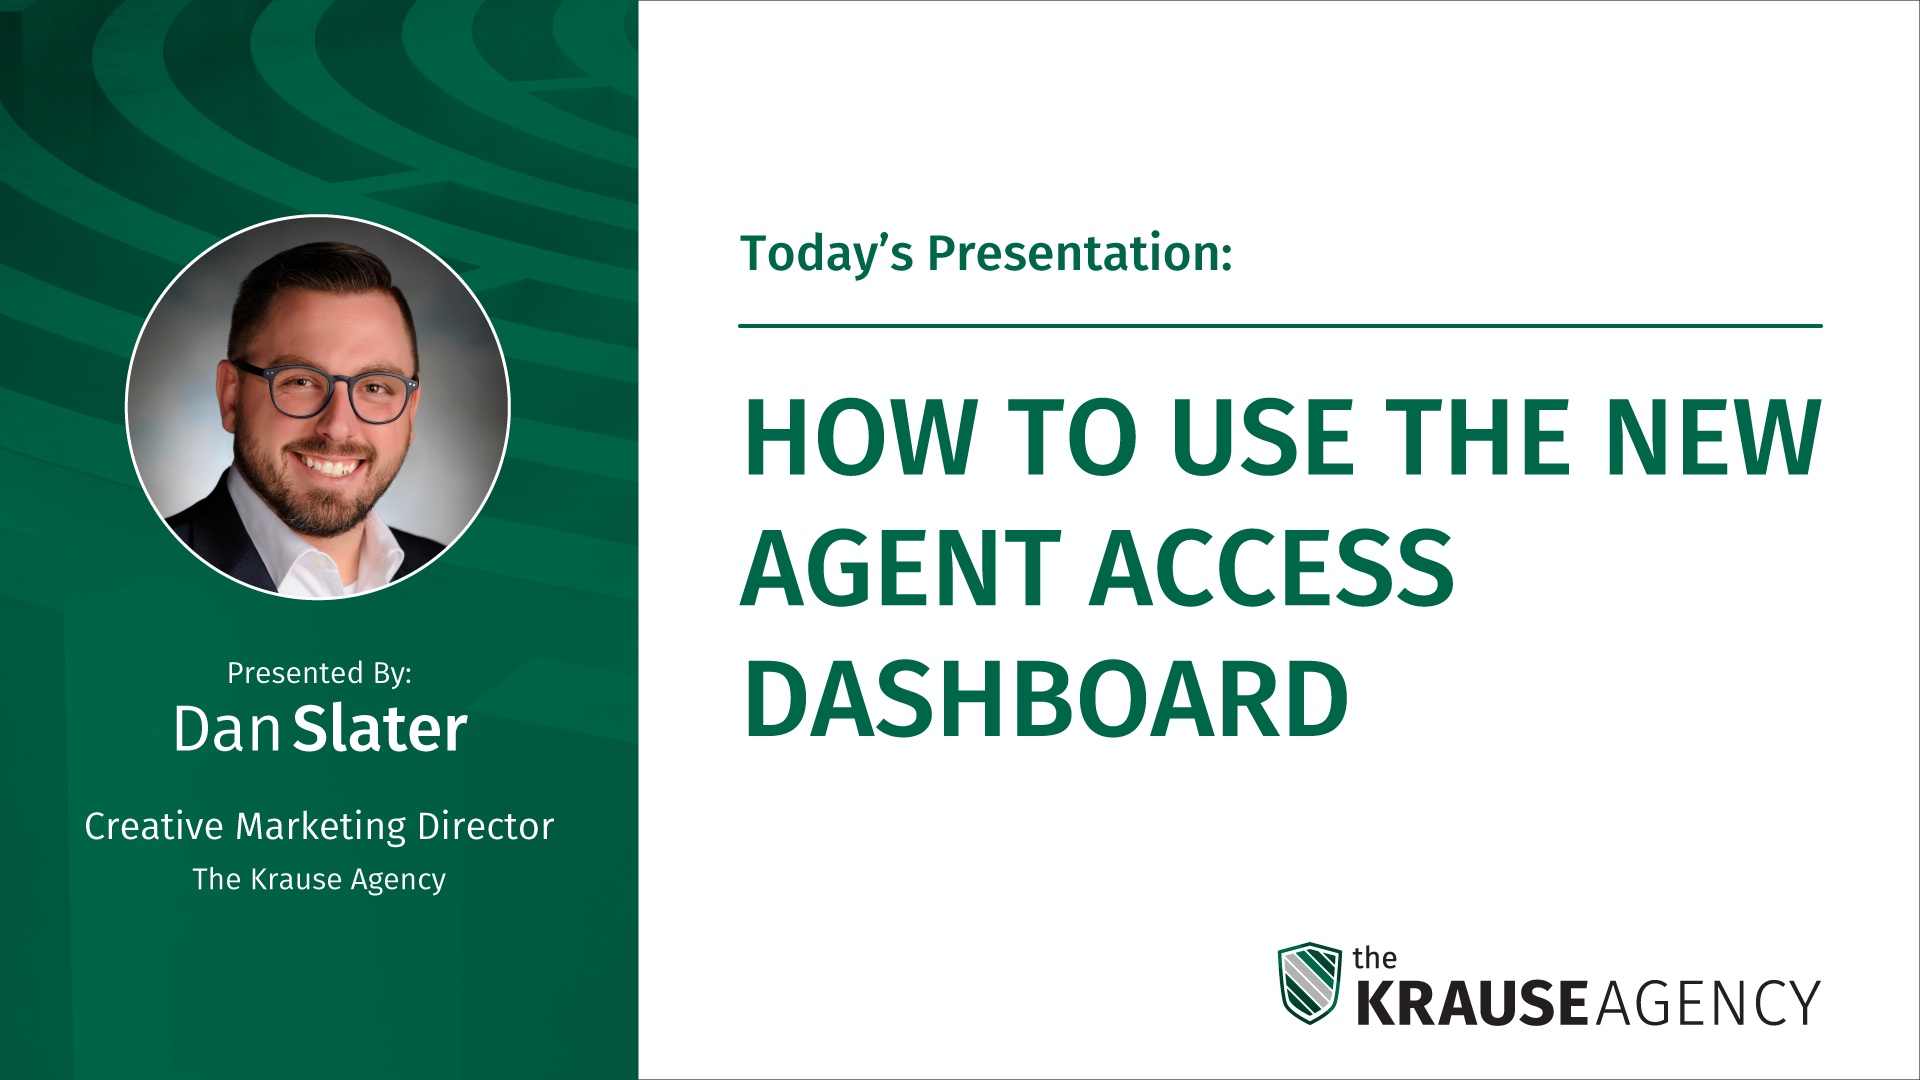 How to Use the New Agent Access Dashboard